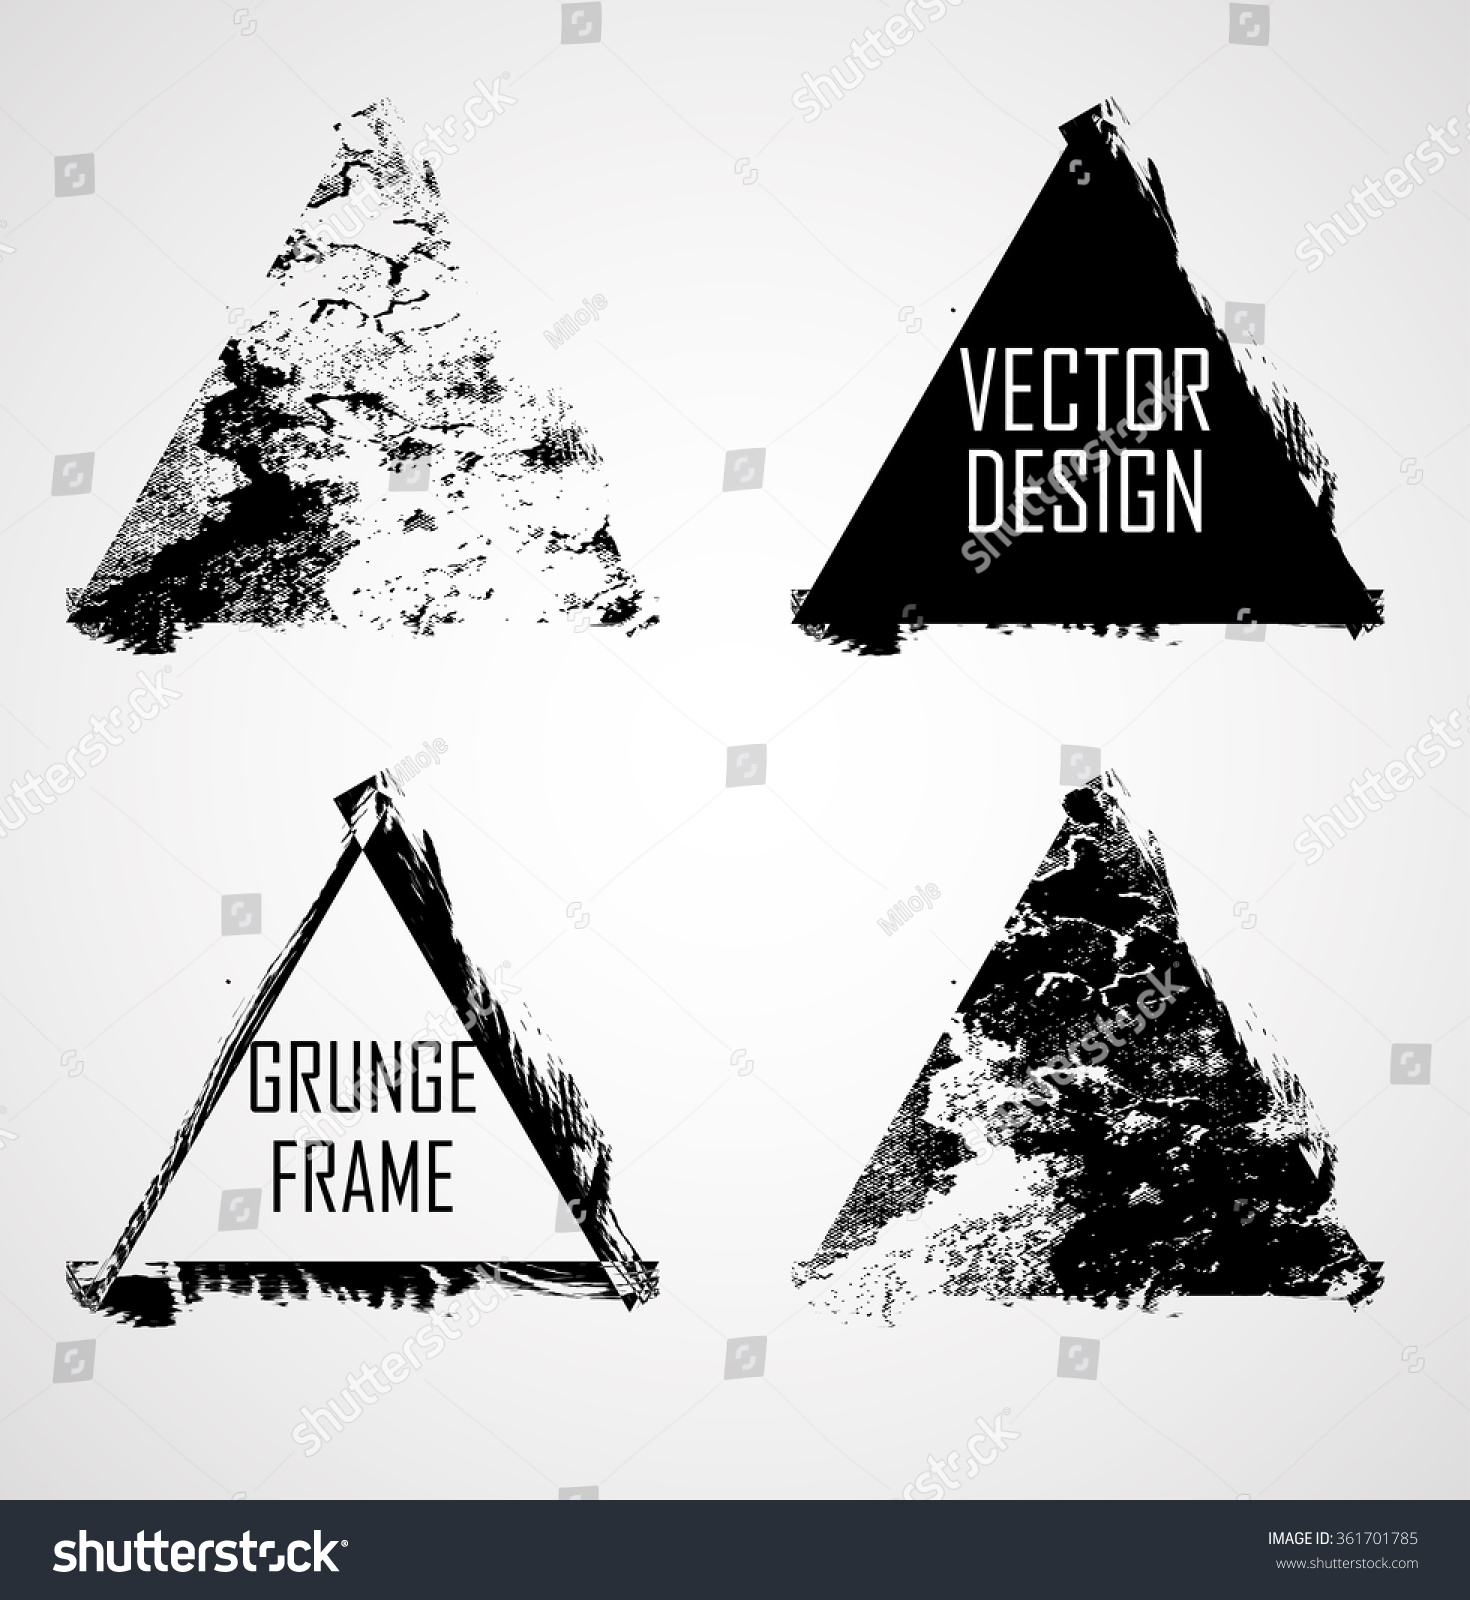 Triangle Retro Shape Black Stamp Banners Stock Vector 361701785 ...